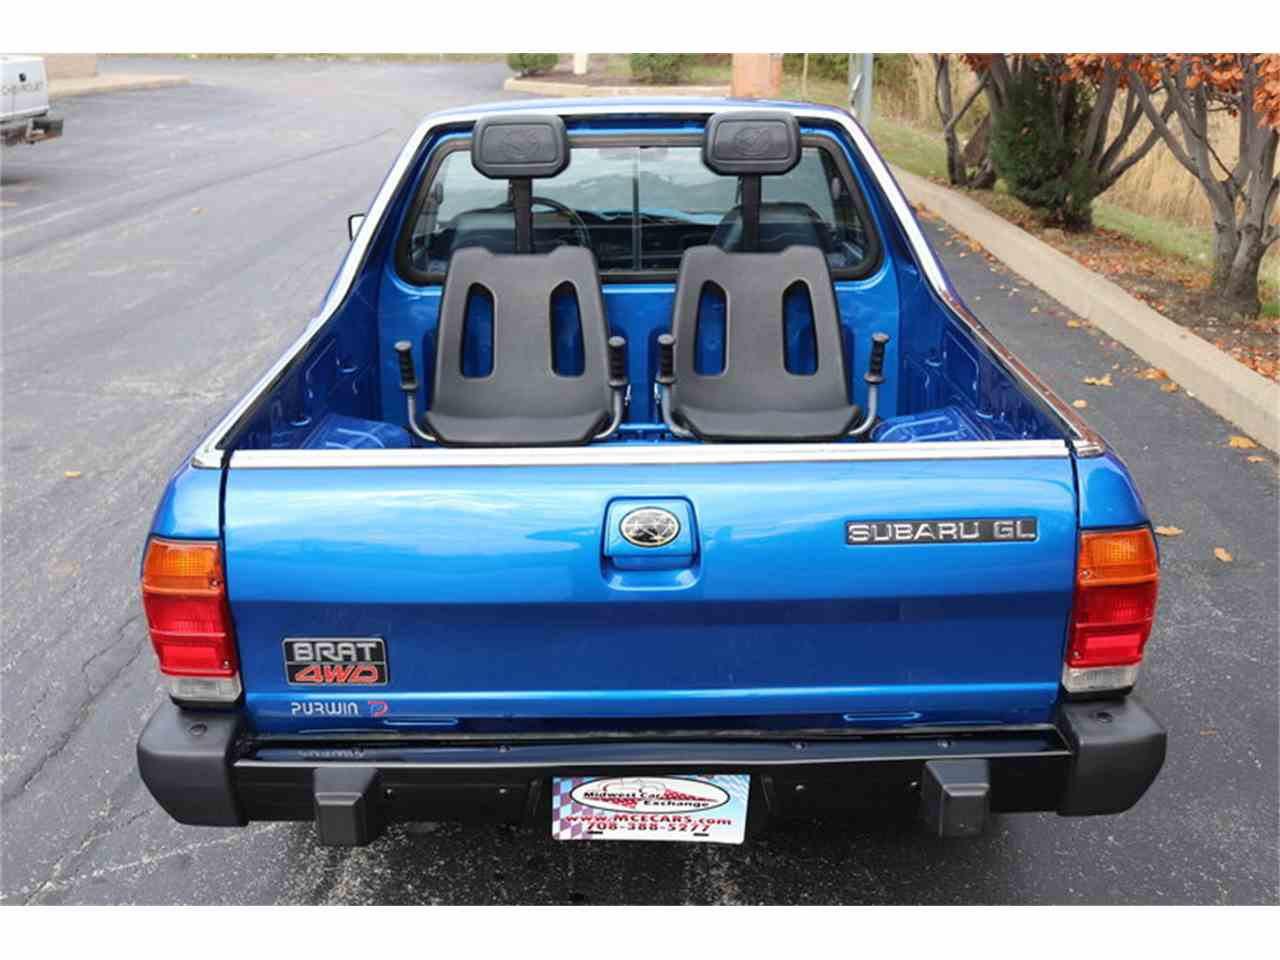 Large Picture of 1983 Brat located in Illinois - $14,900.00 Offered by Midwest Car Exchange - M4TU